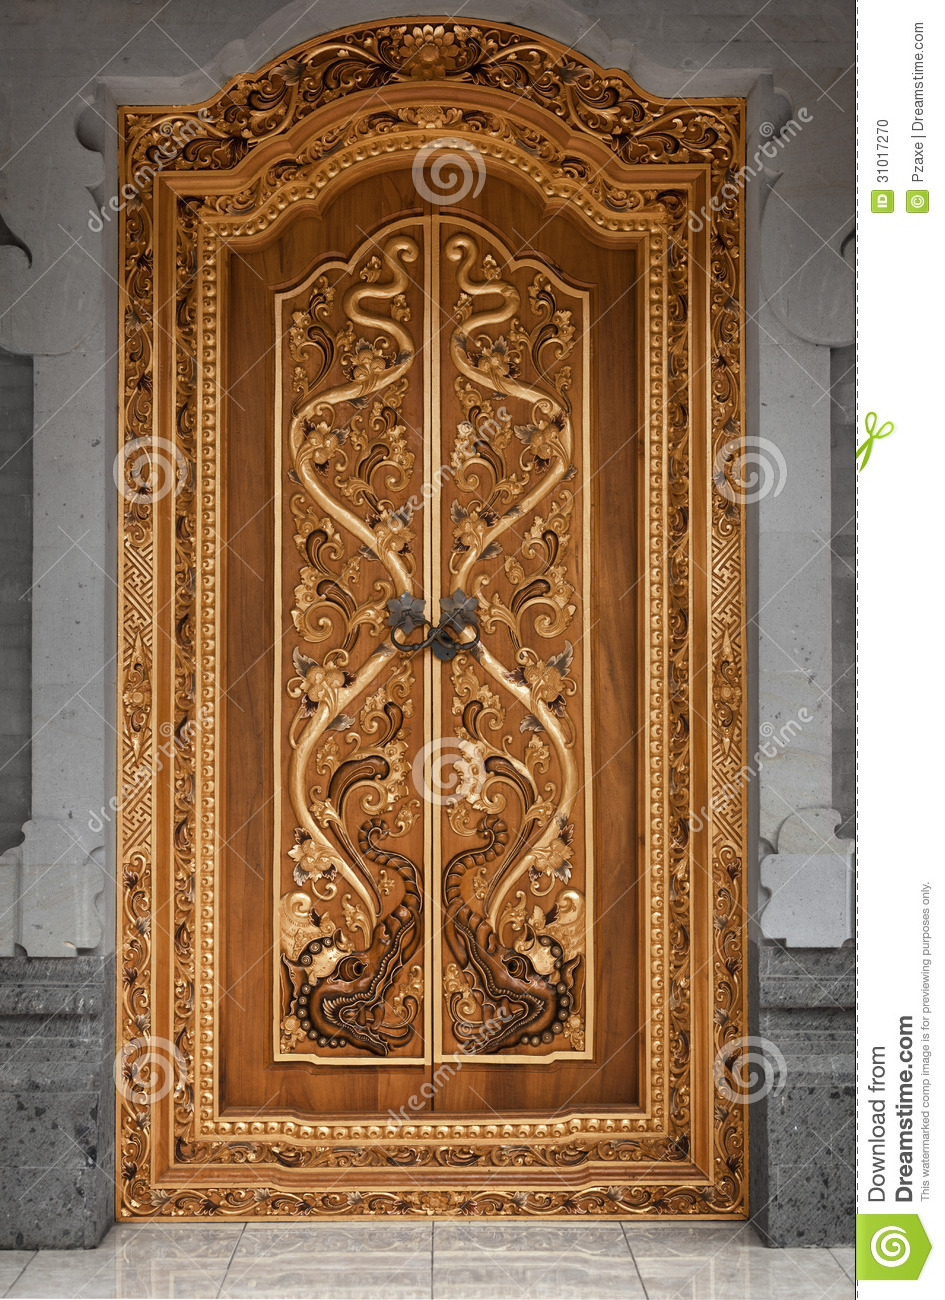 Wooden door of an old temple with carvings. Indonesia Bali & Wooden Door Of An Old Temple With Carvings. Indonesia Bali Stock ... pezcame.com